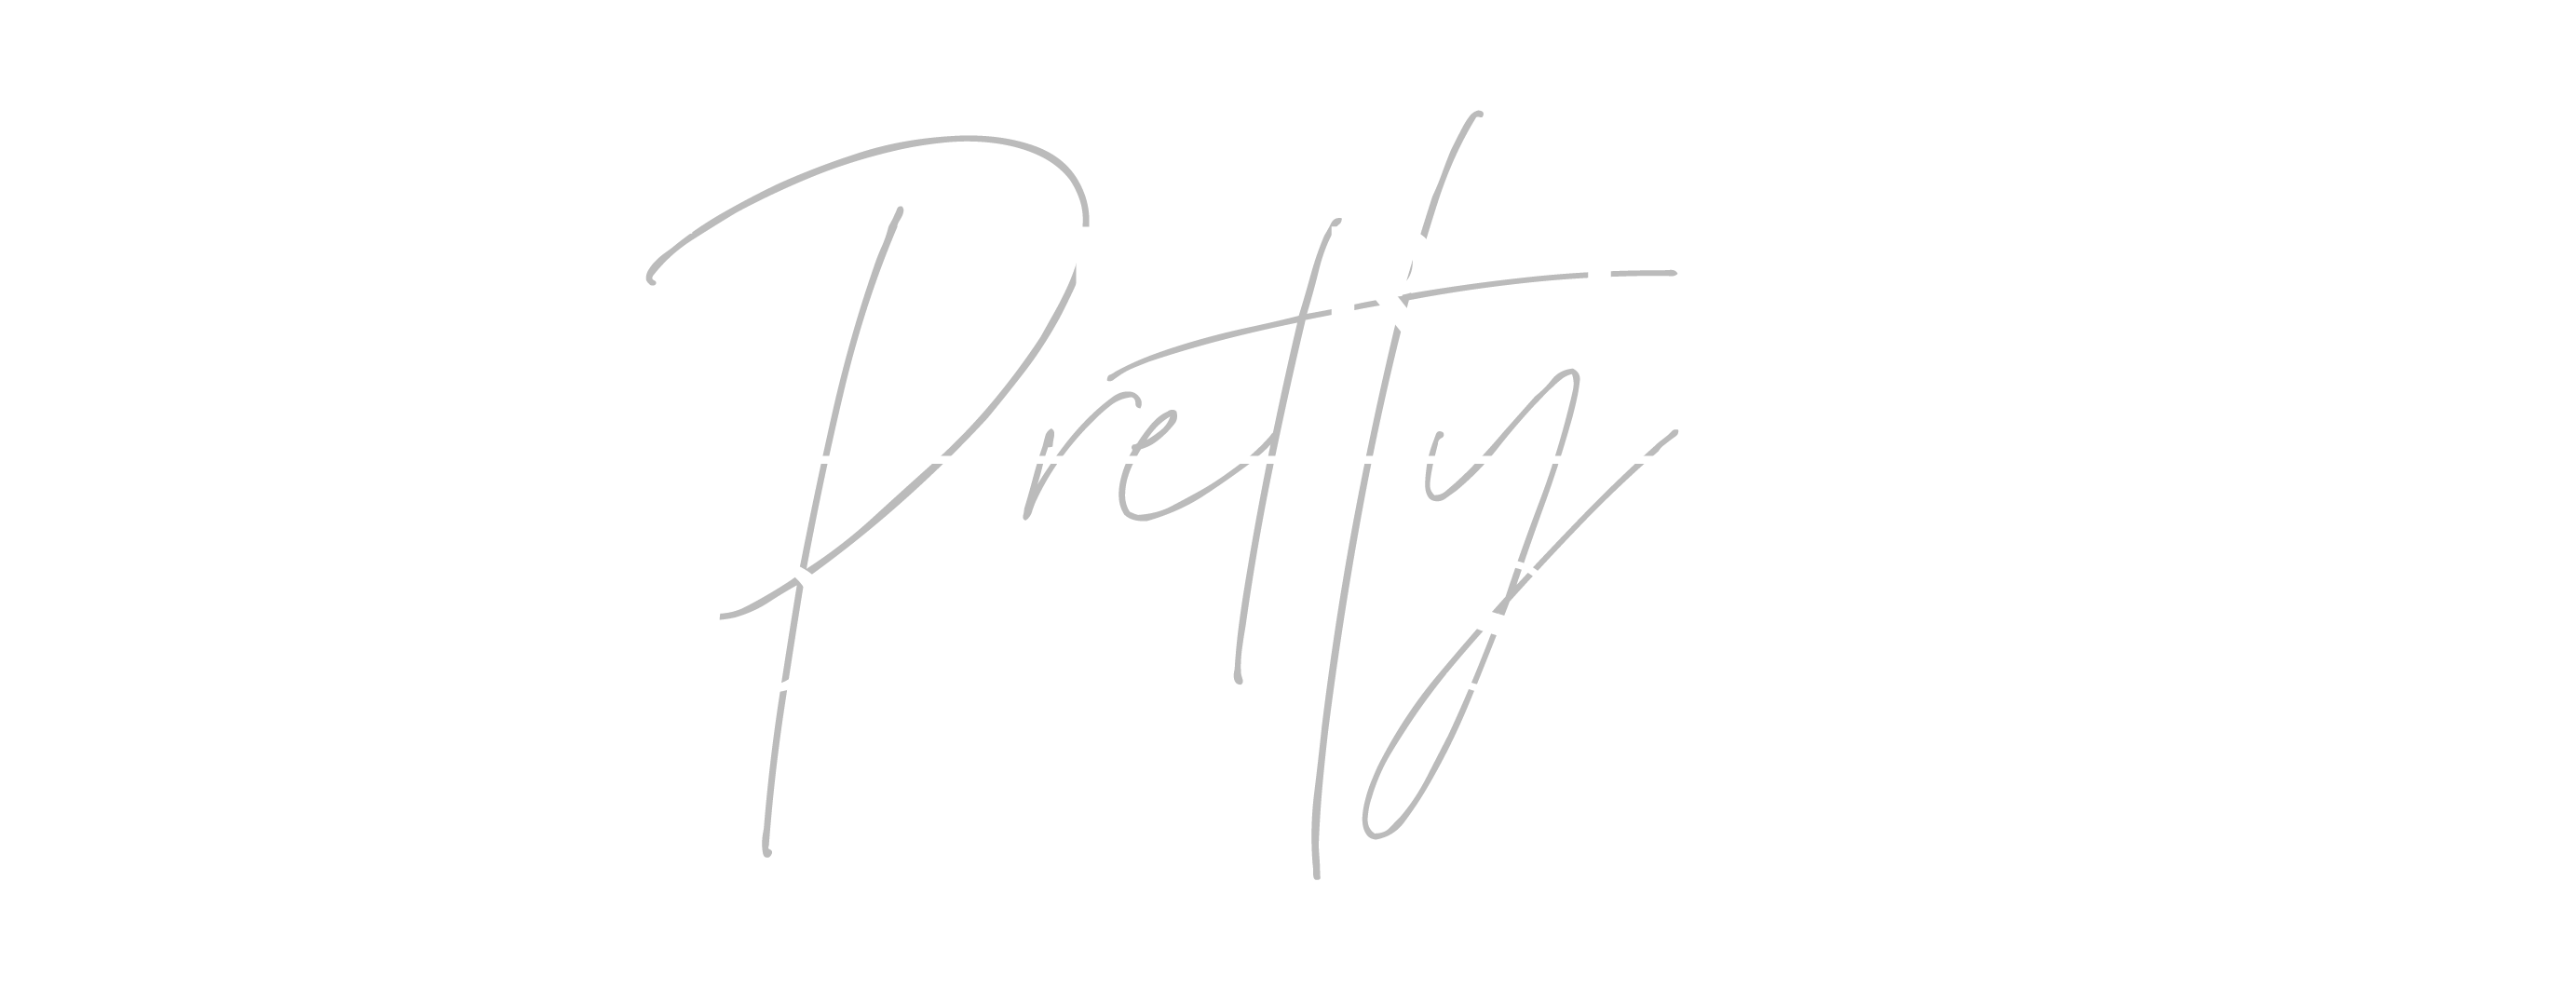 the pretty prop shop event hire logo